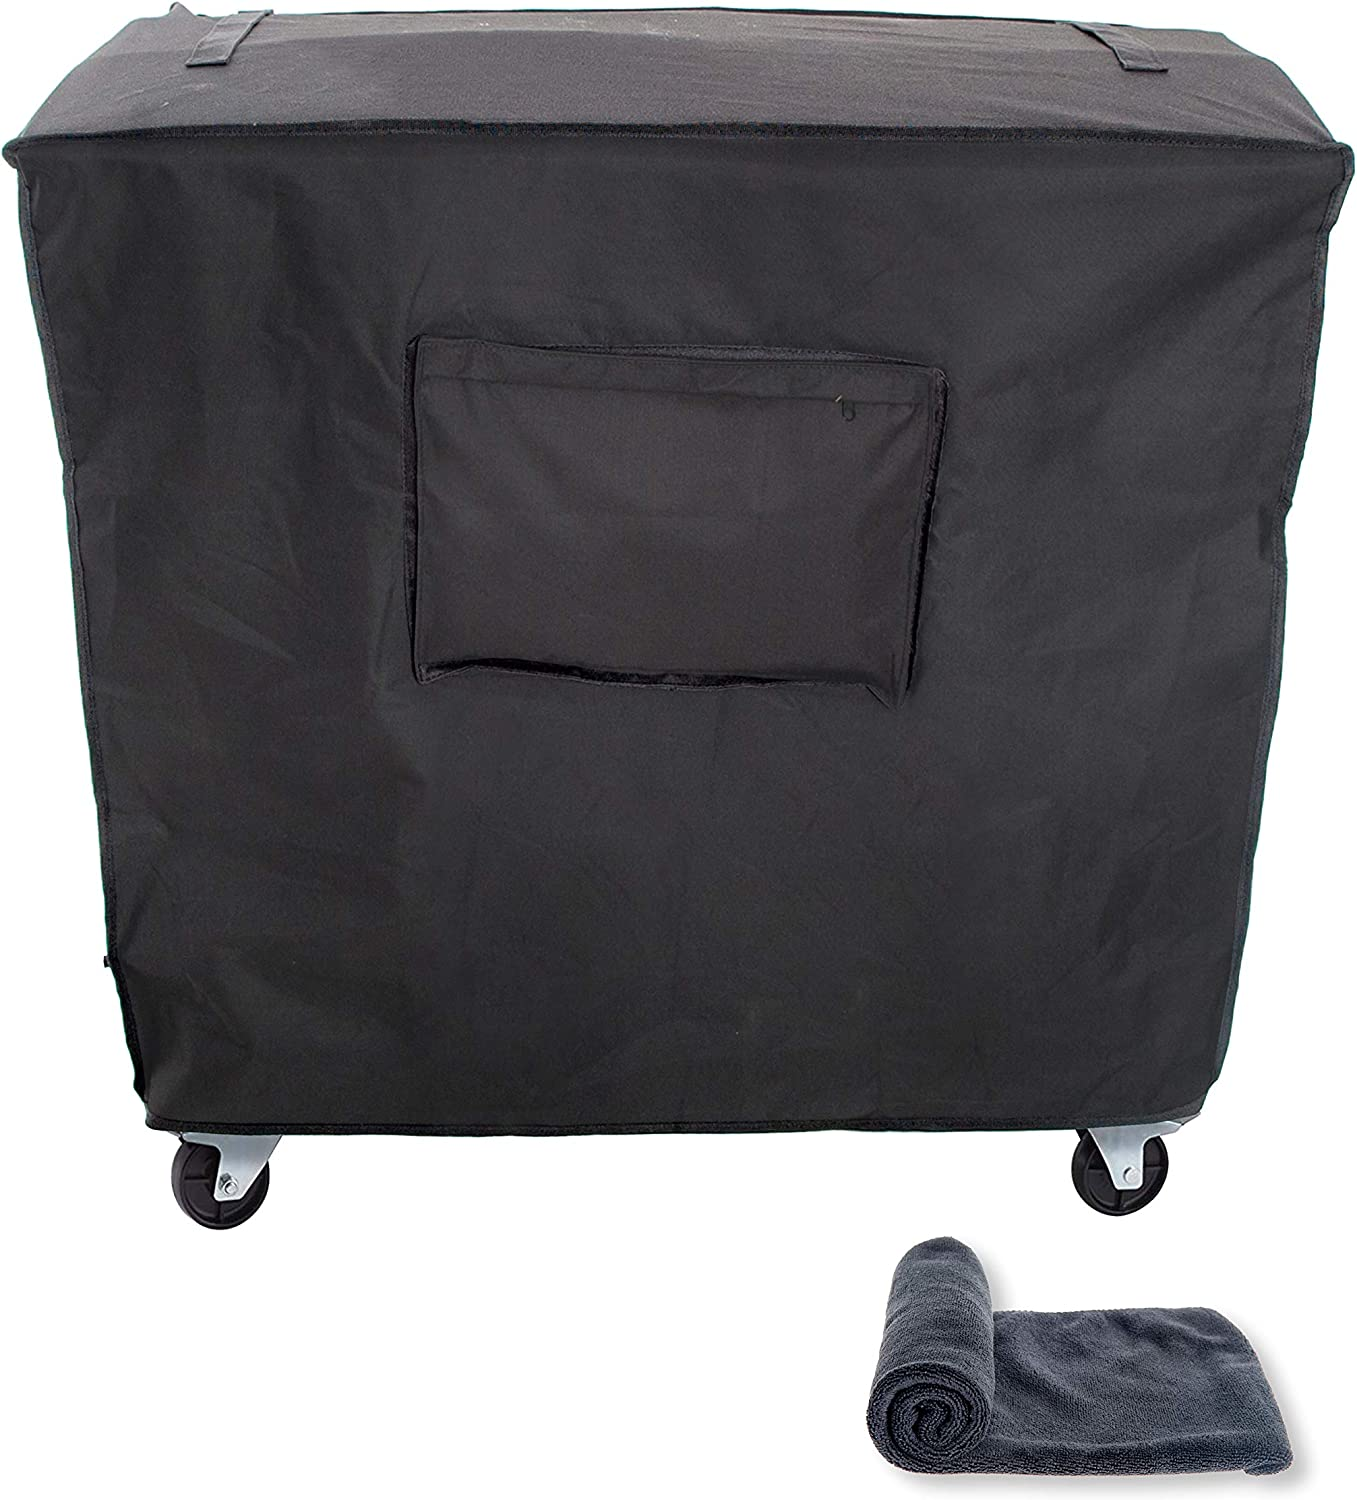 JSD Works Cooler Cart Cover – Fits 80 Quart Rolling Coolers. Waterproof Outdoor Patio Cooler Cover with UV Coating in Black Comes with Microfiber Towel